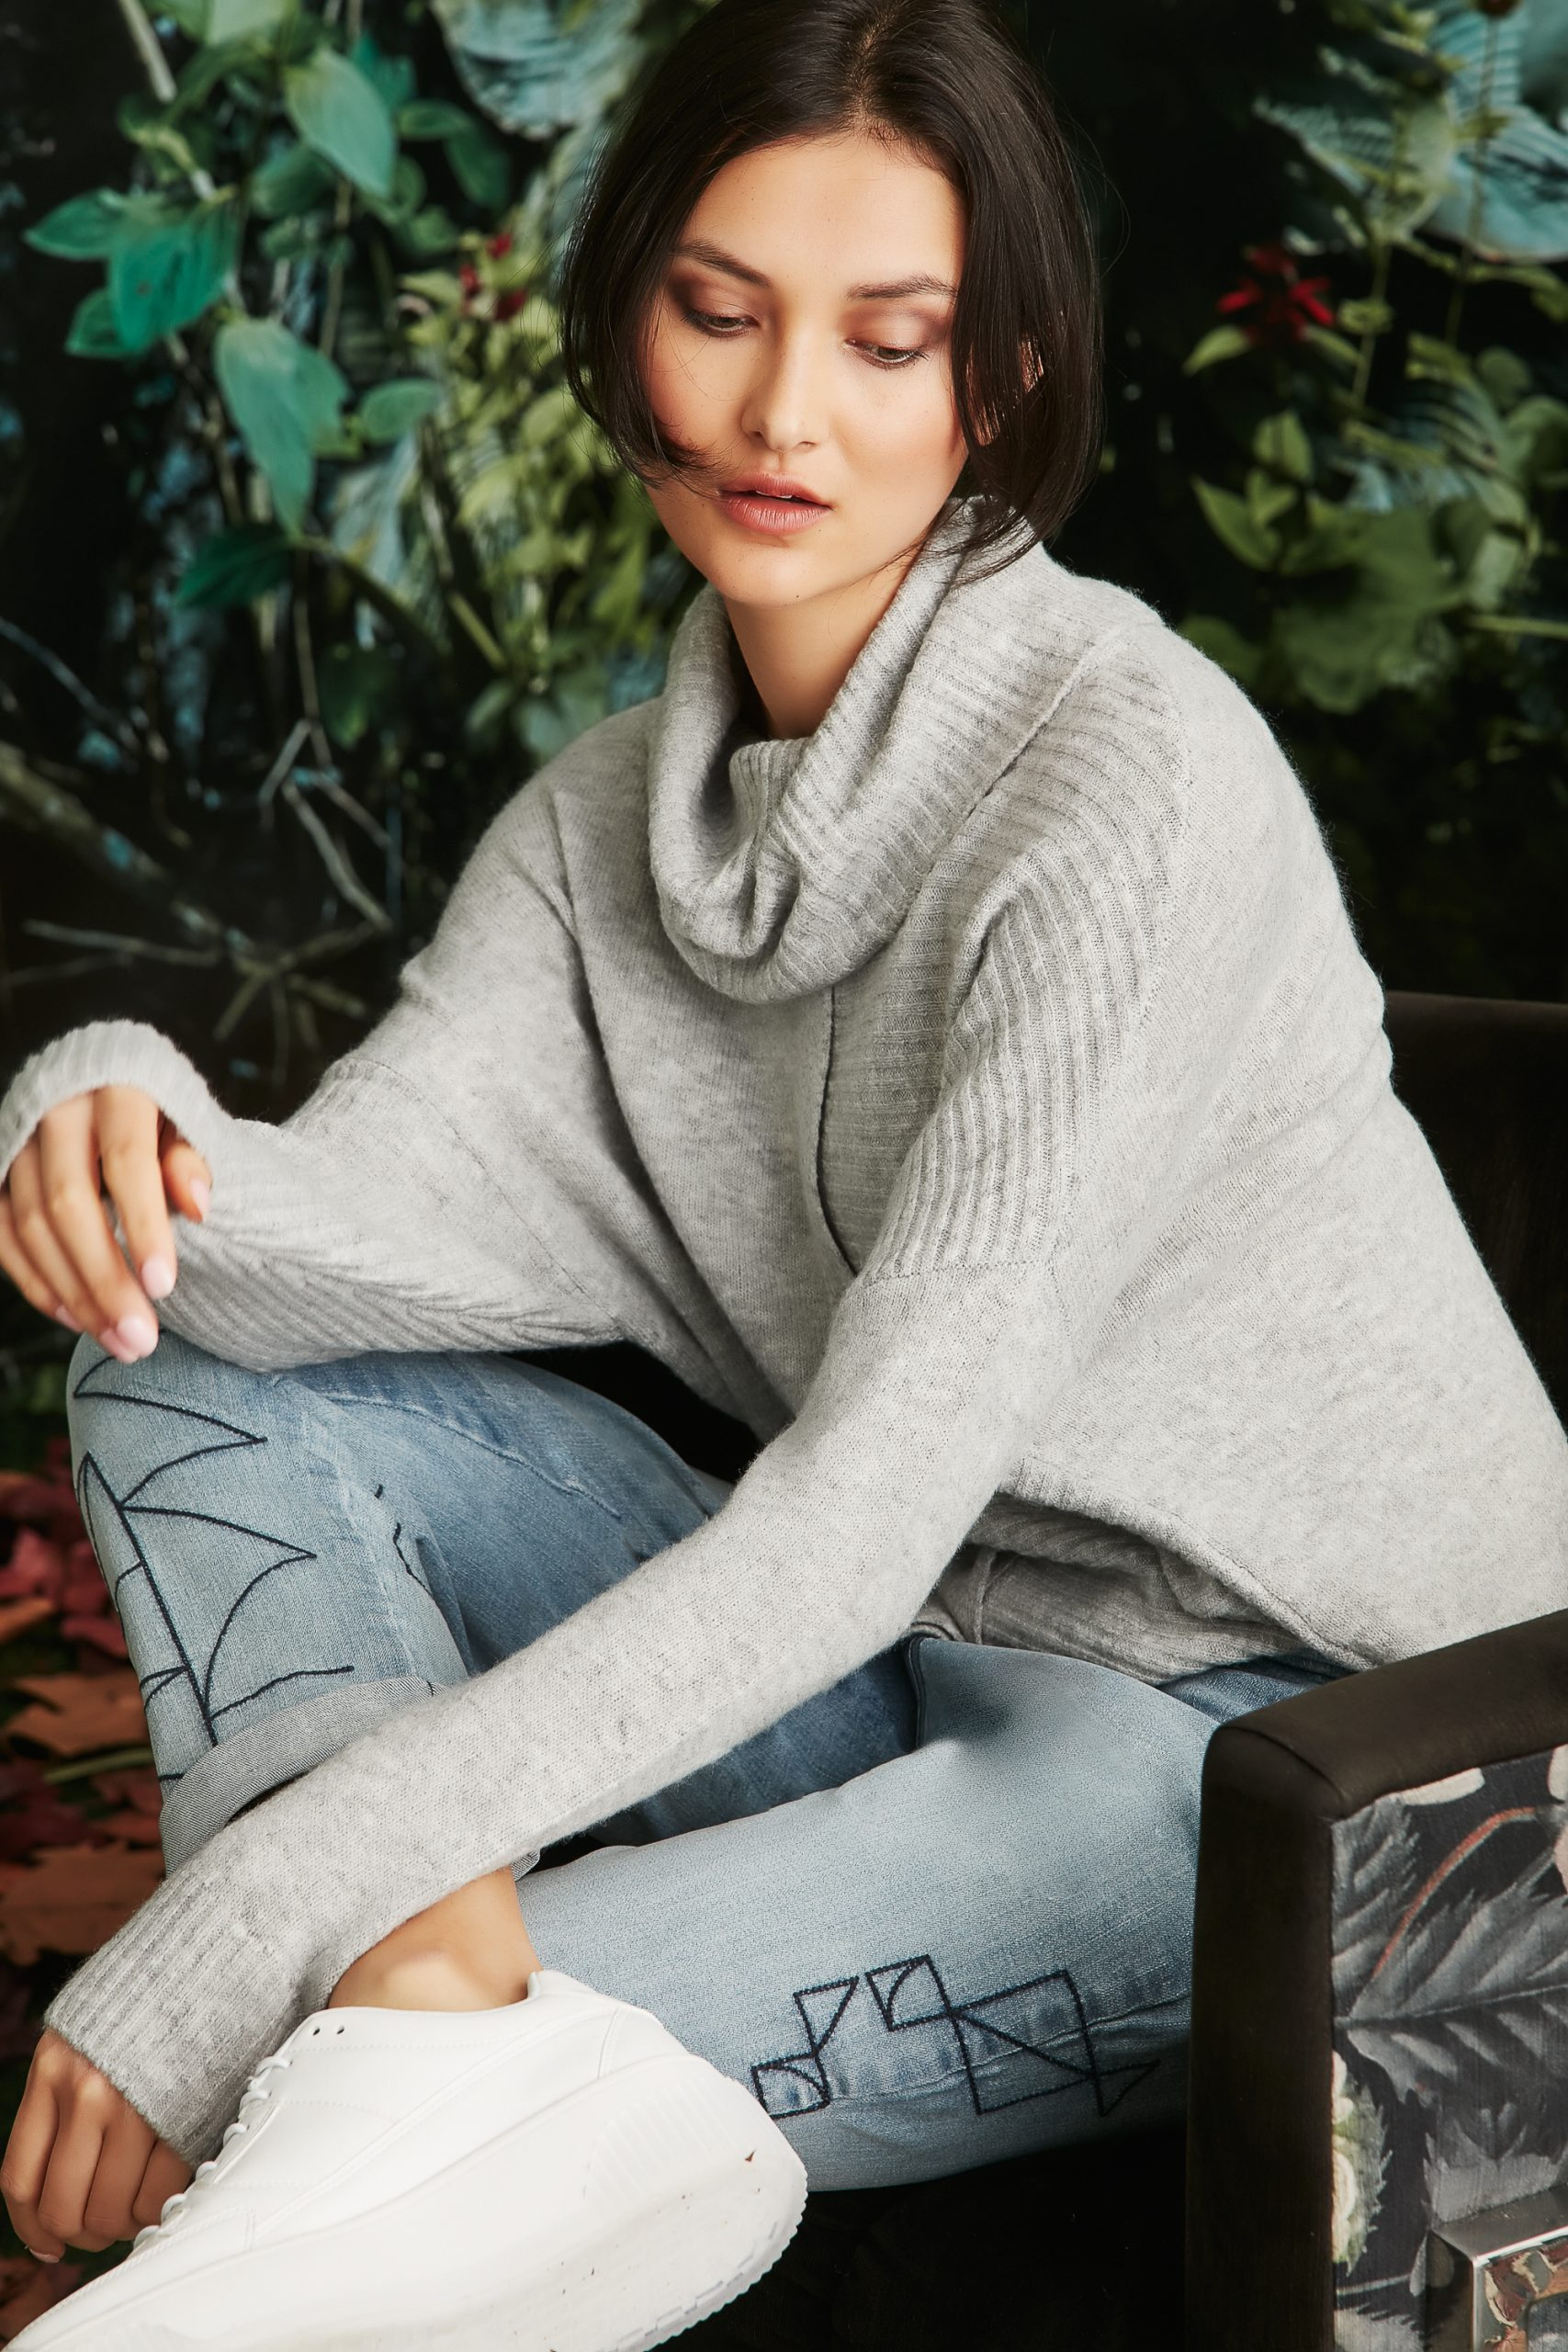 7234BR_TONE SWEATER_SILVER_7357XBT_PUZZLE JEAN_MID BLUE (2)